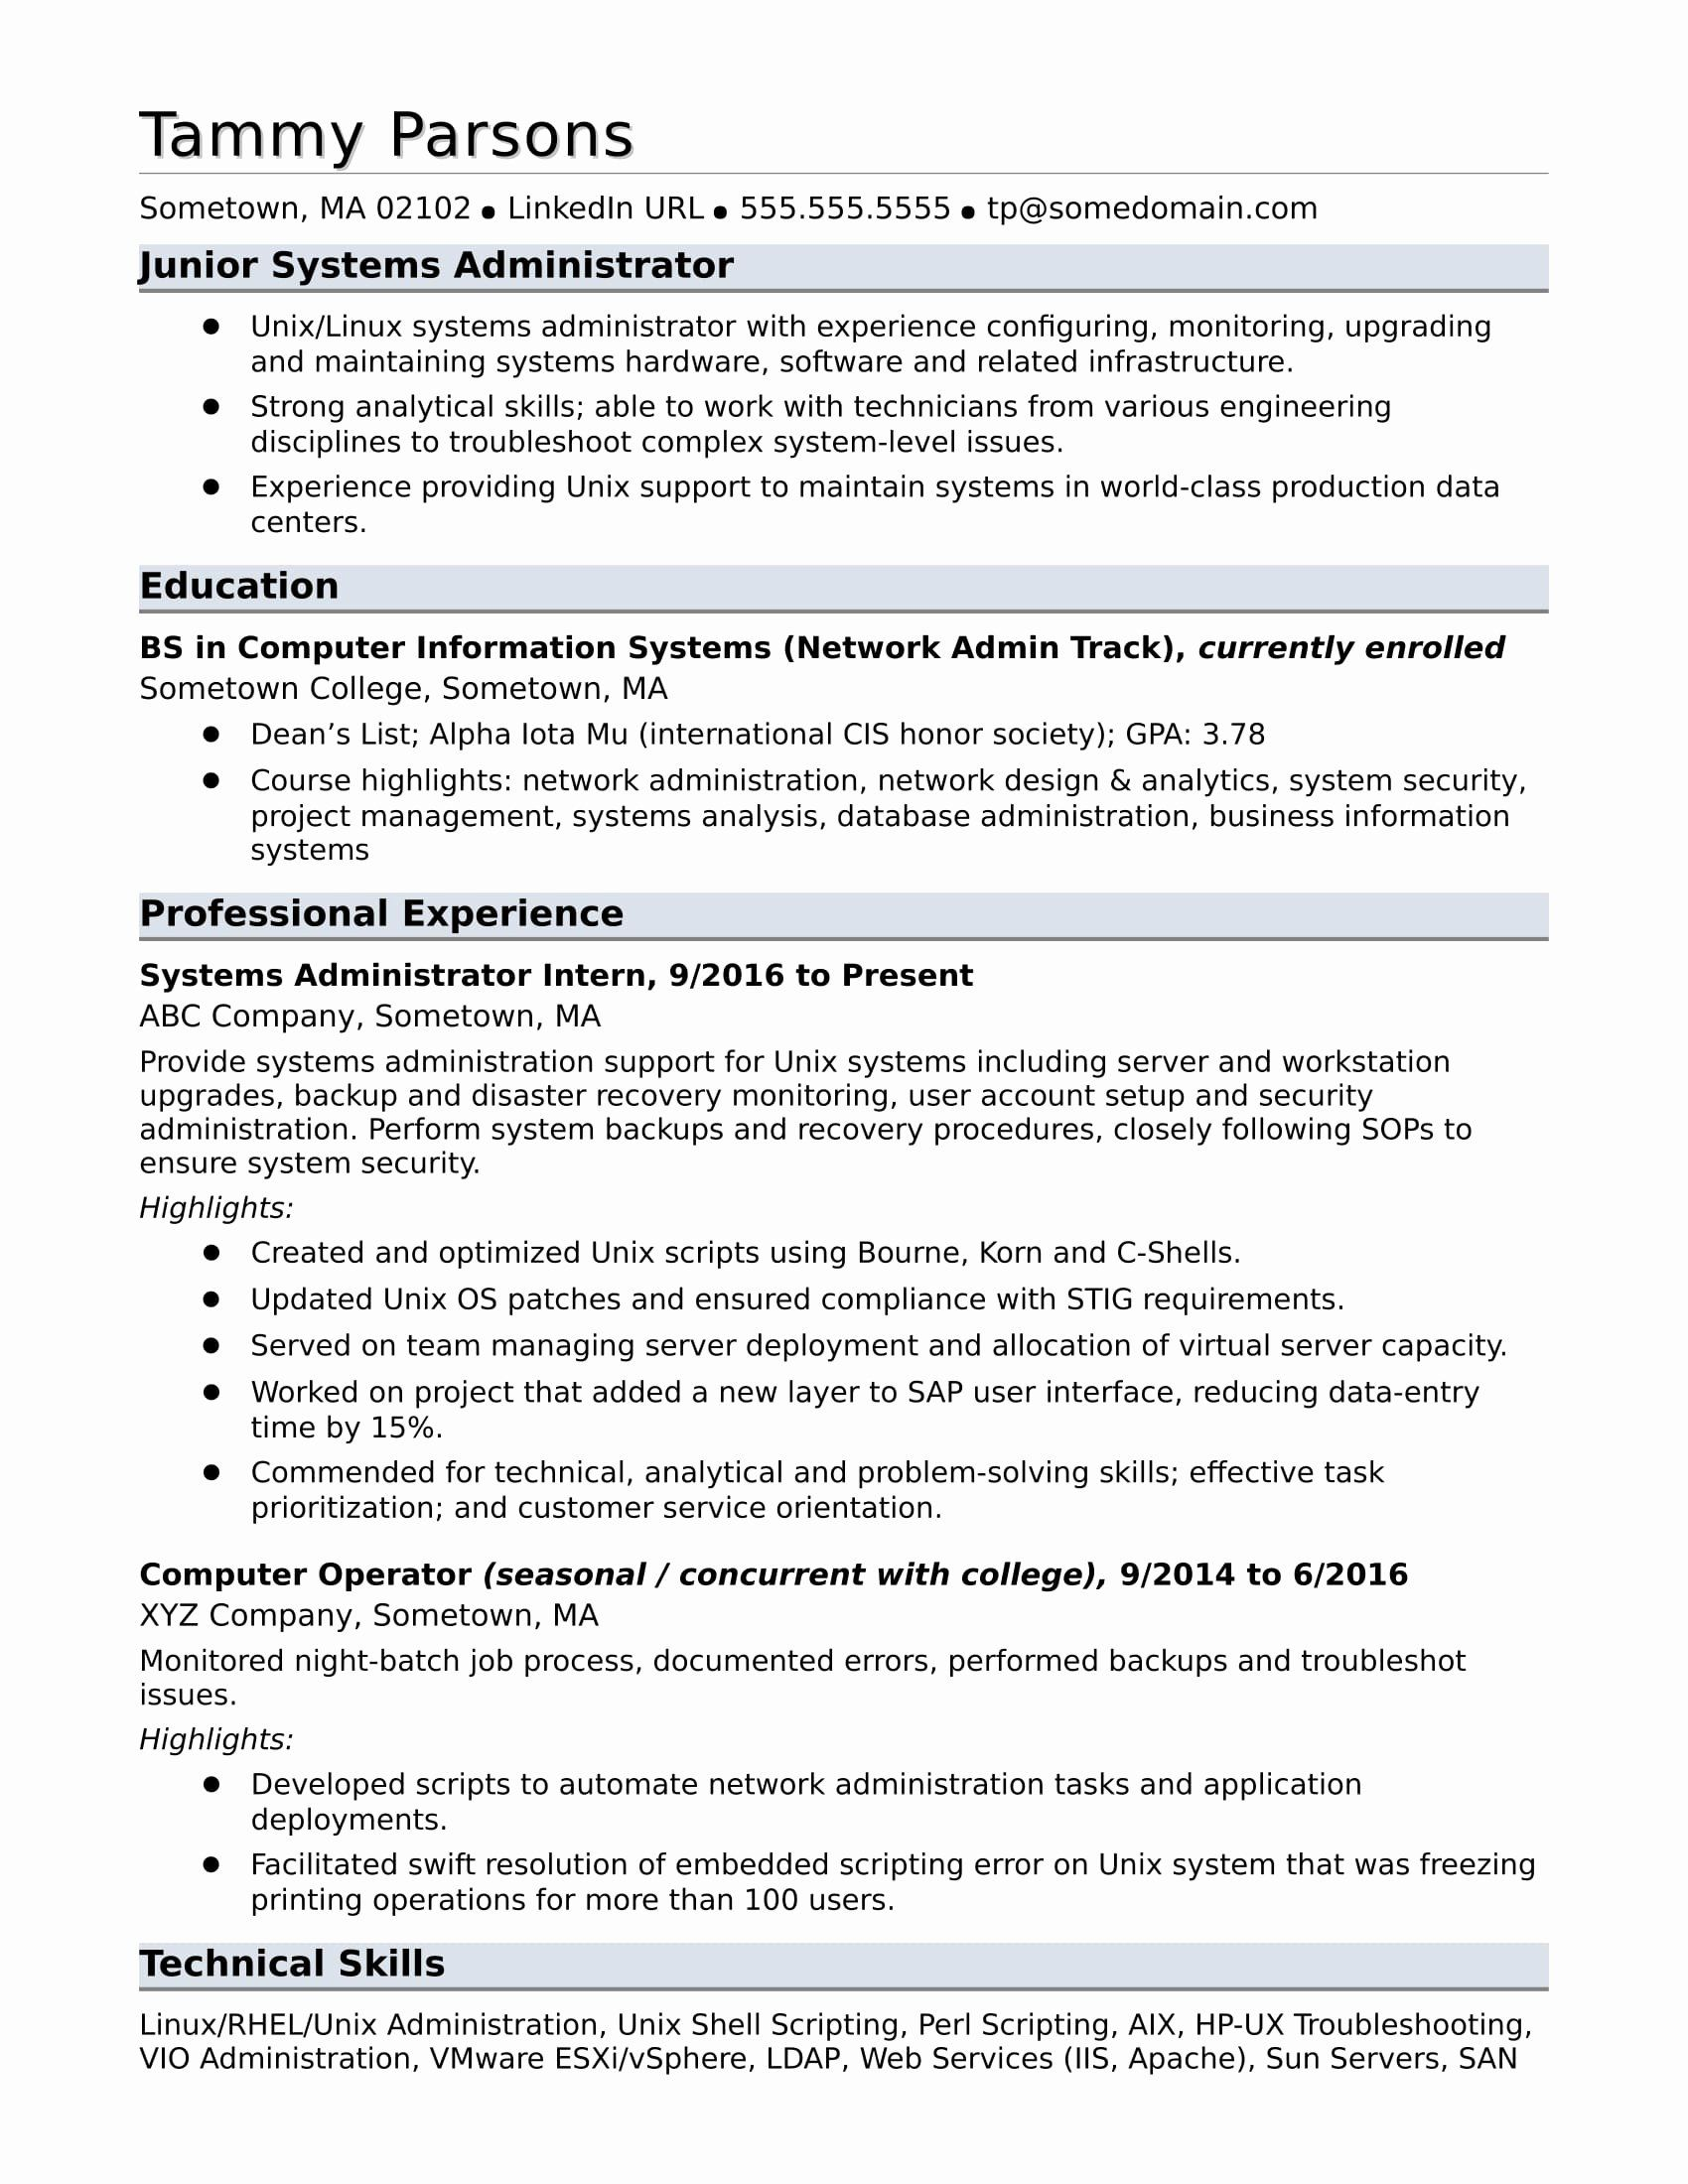 Salesforce Administrator Resume Examples Elegant Cover Letter For Salesforce Administrator Romes Danapardaz In 2020 Resume Examples Resume Skills Job Resume Examples